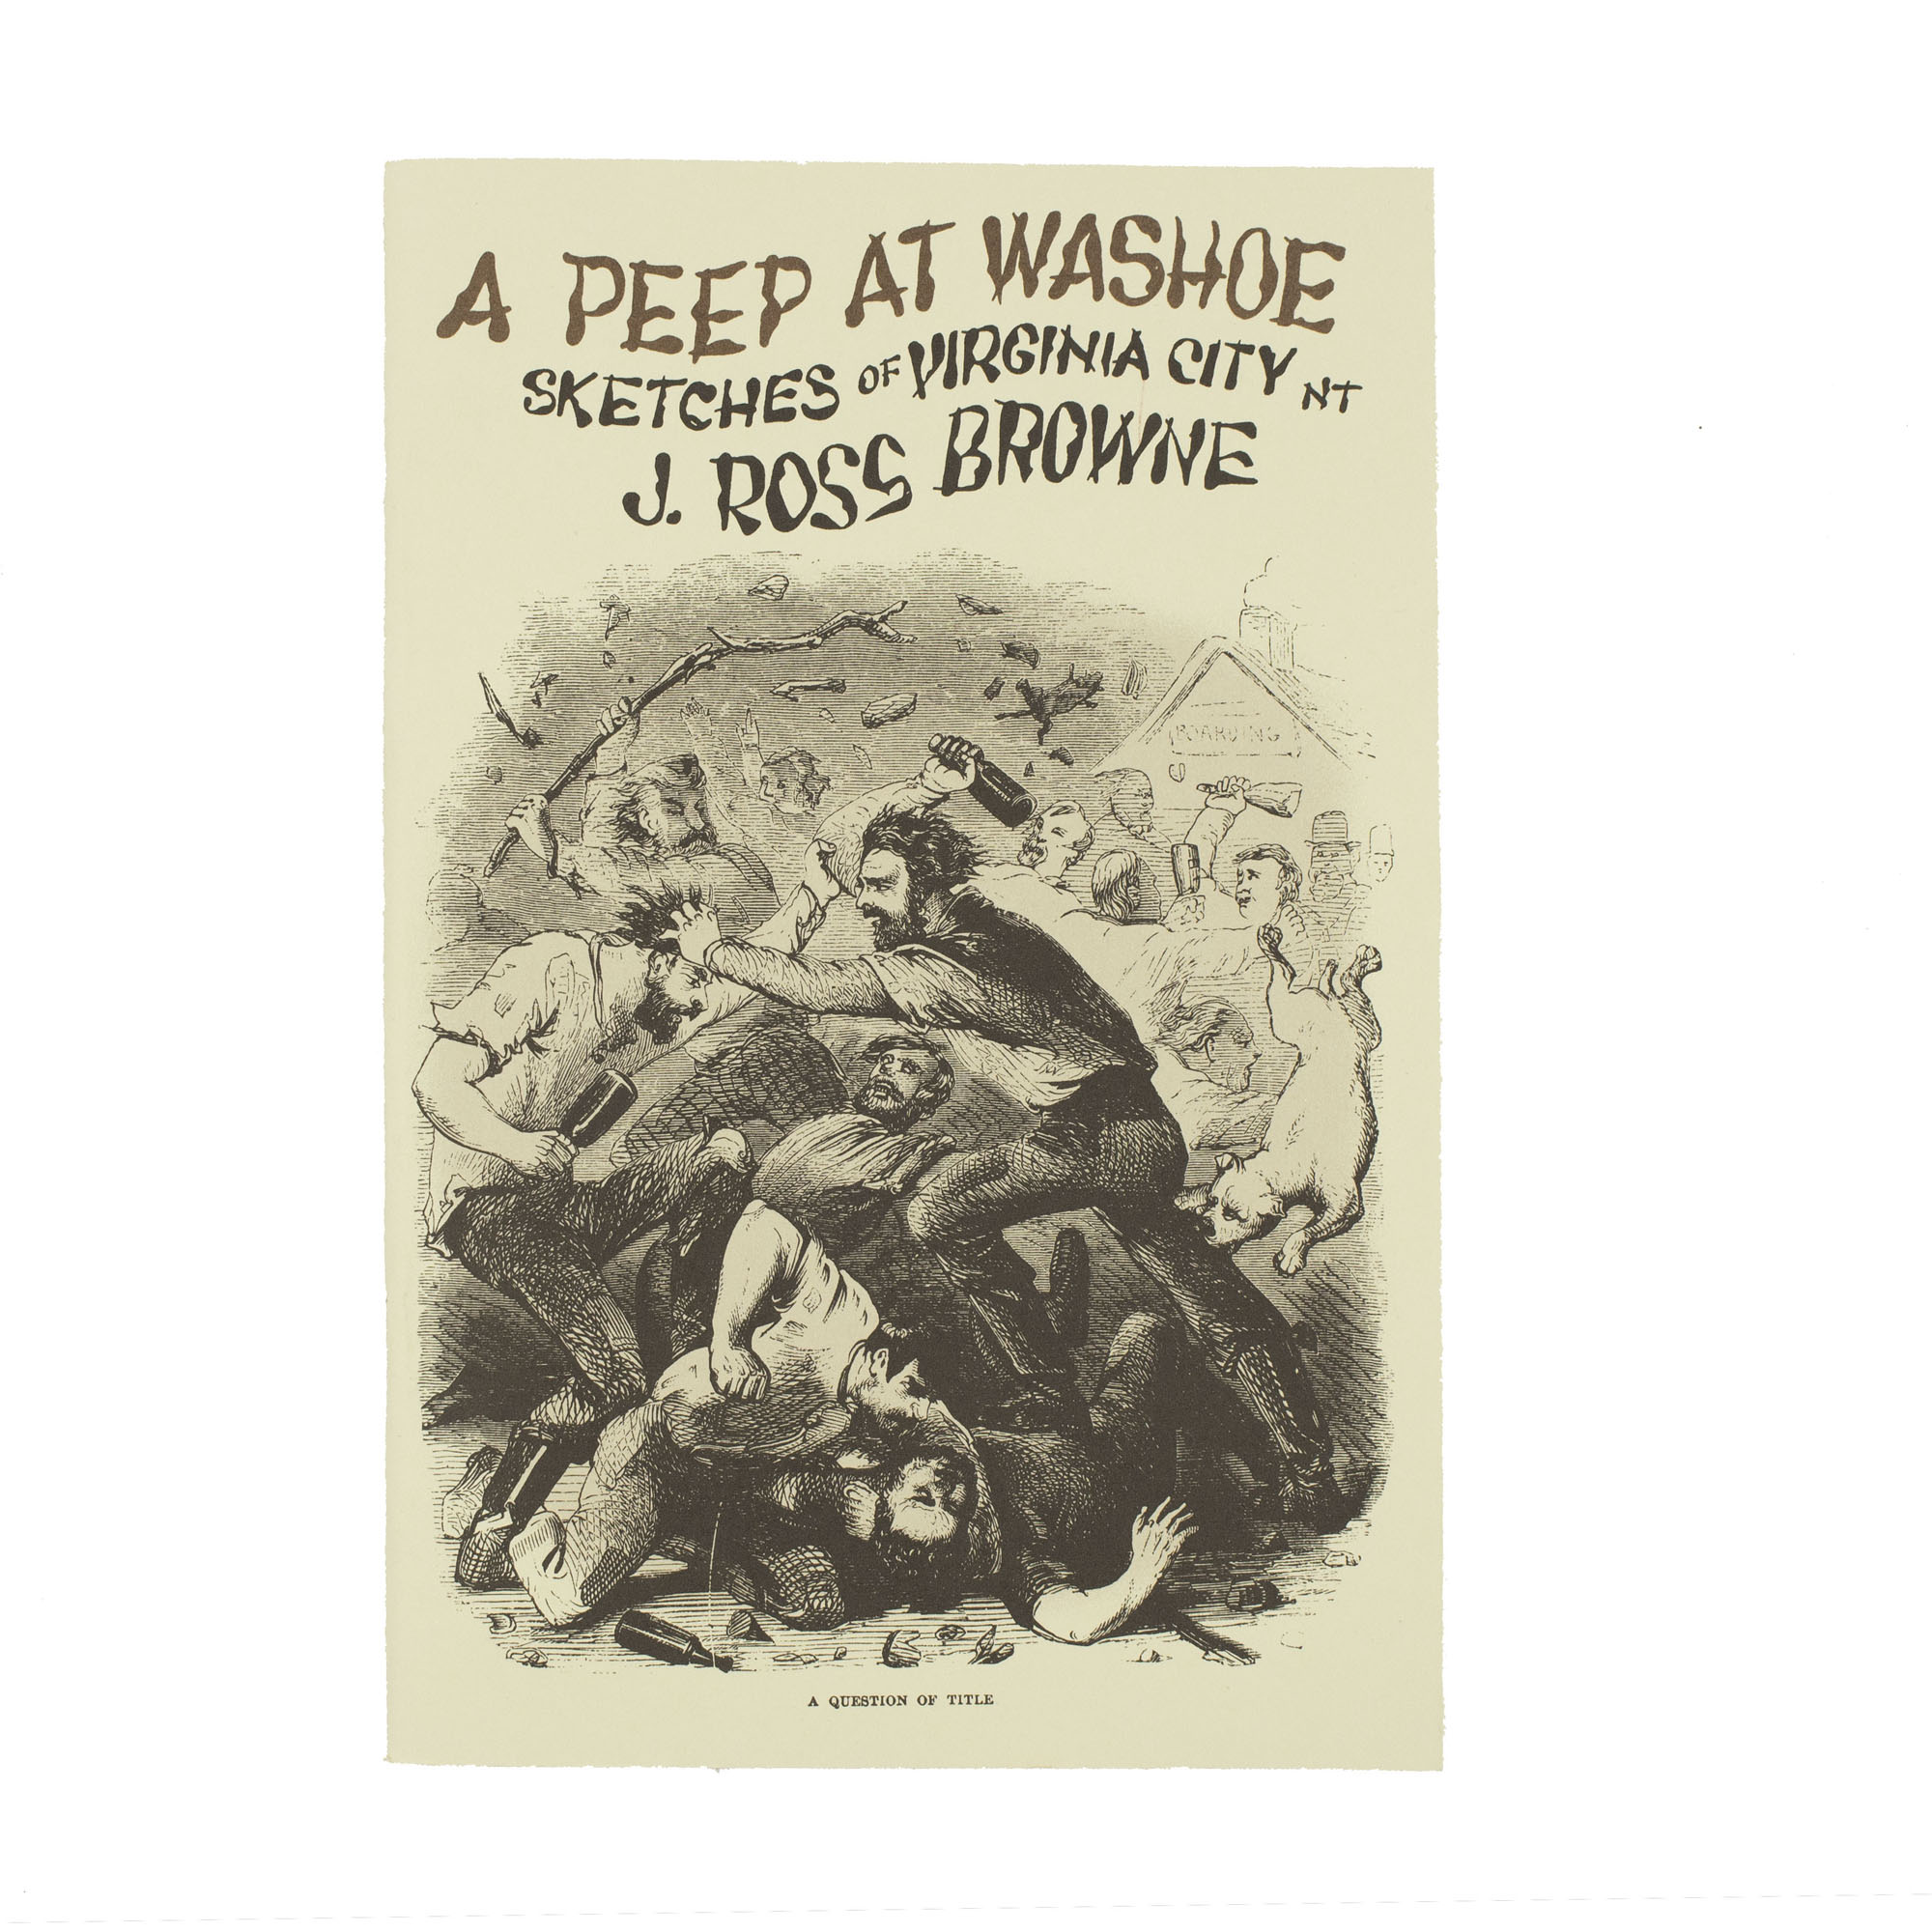 Nevada Revised Statutes >> A Peep at Washoe - Sketches of Virginia City by J. Ross Browne